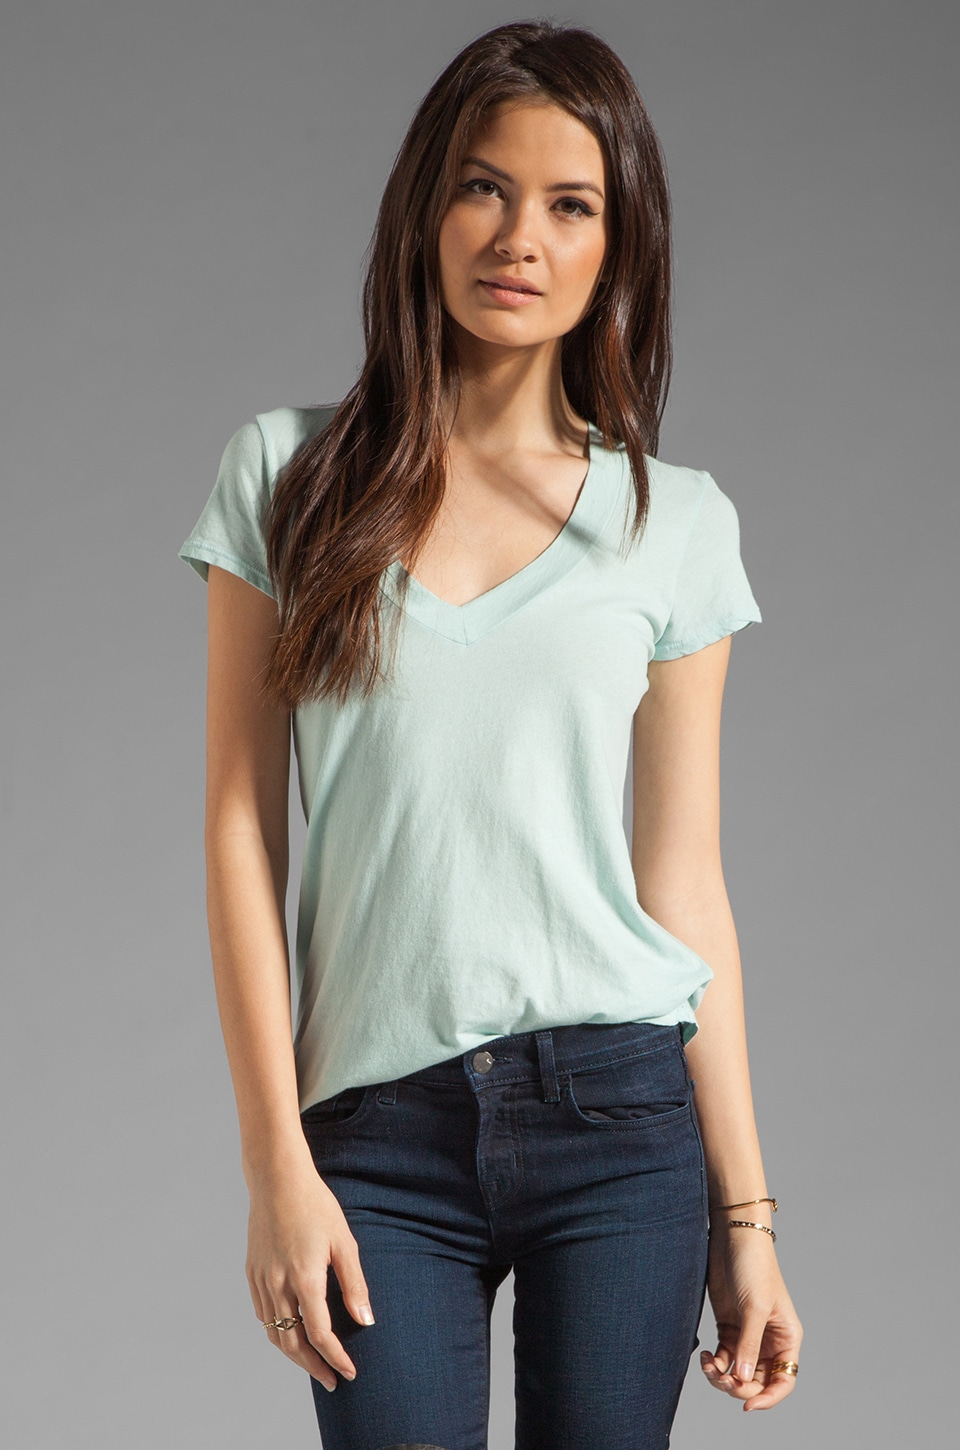 James Perse Short Sleeve Casual V Neck Tee in Ocean Spray